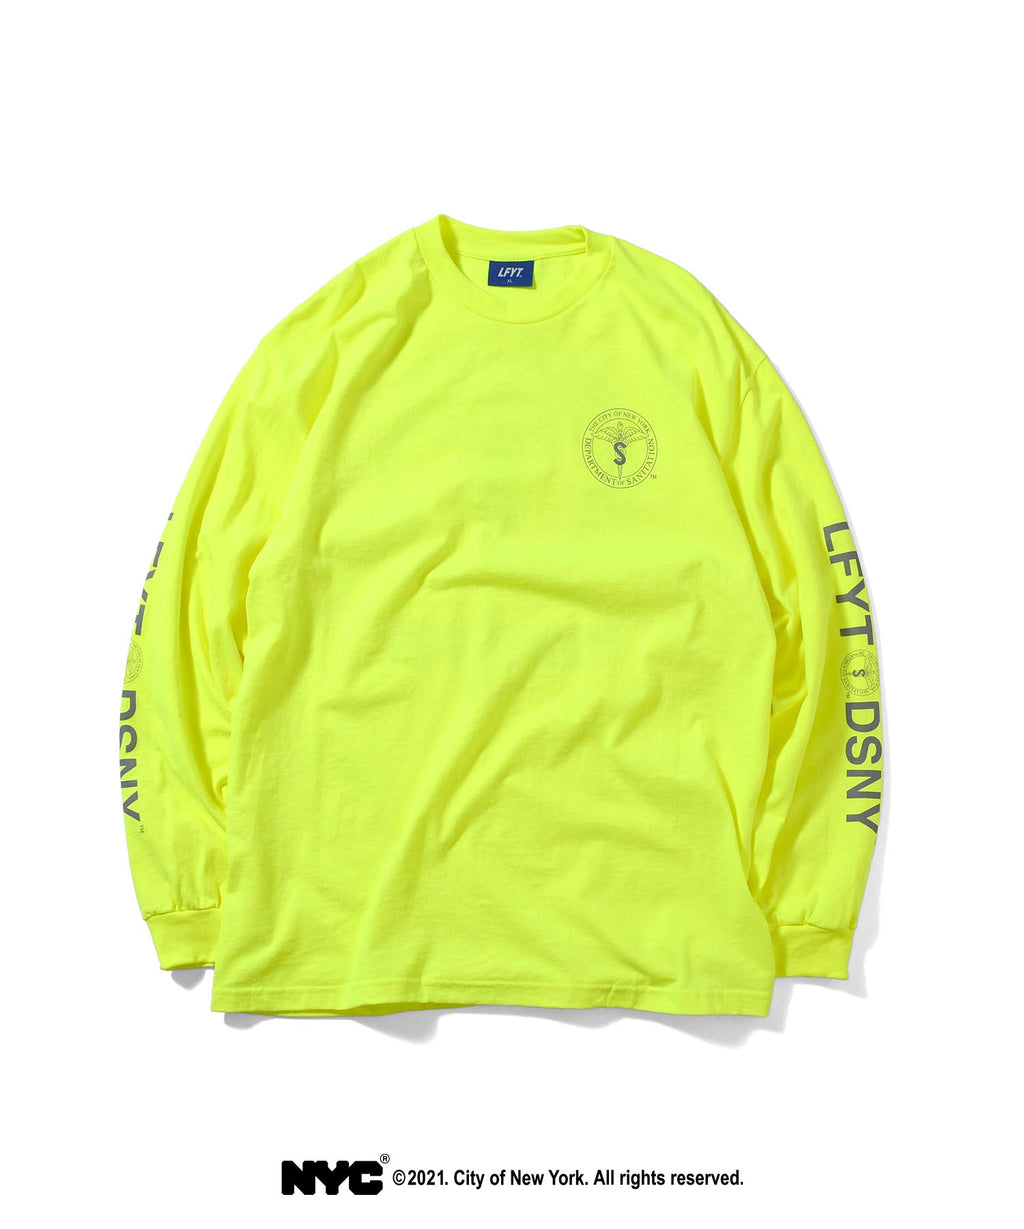 LFYT X DSNY COMMUNITY SERVICES L/S TEE LS210102 SAFETY GREEN